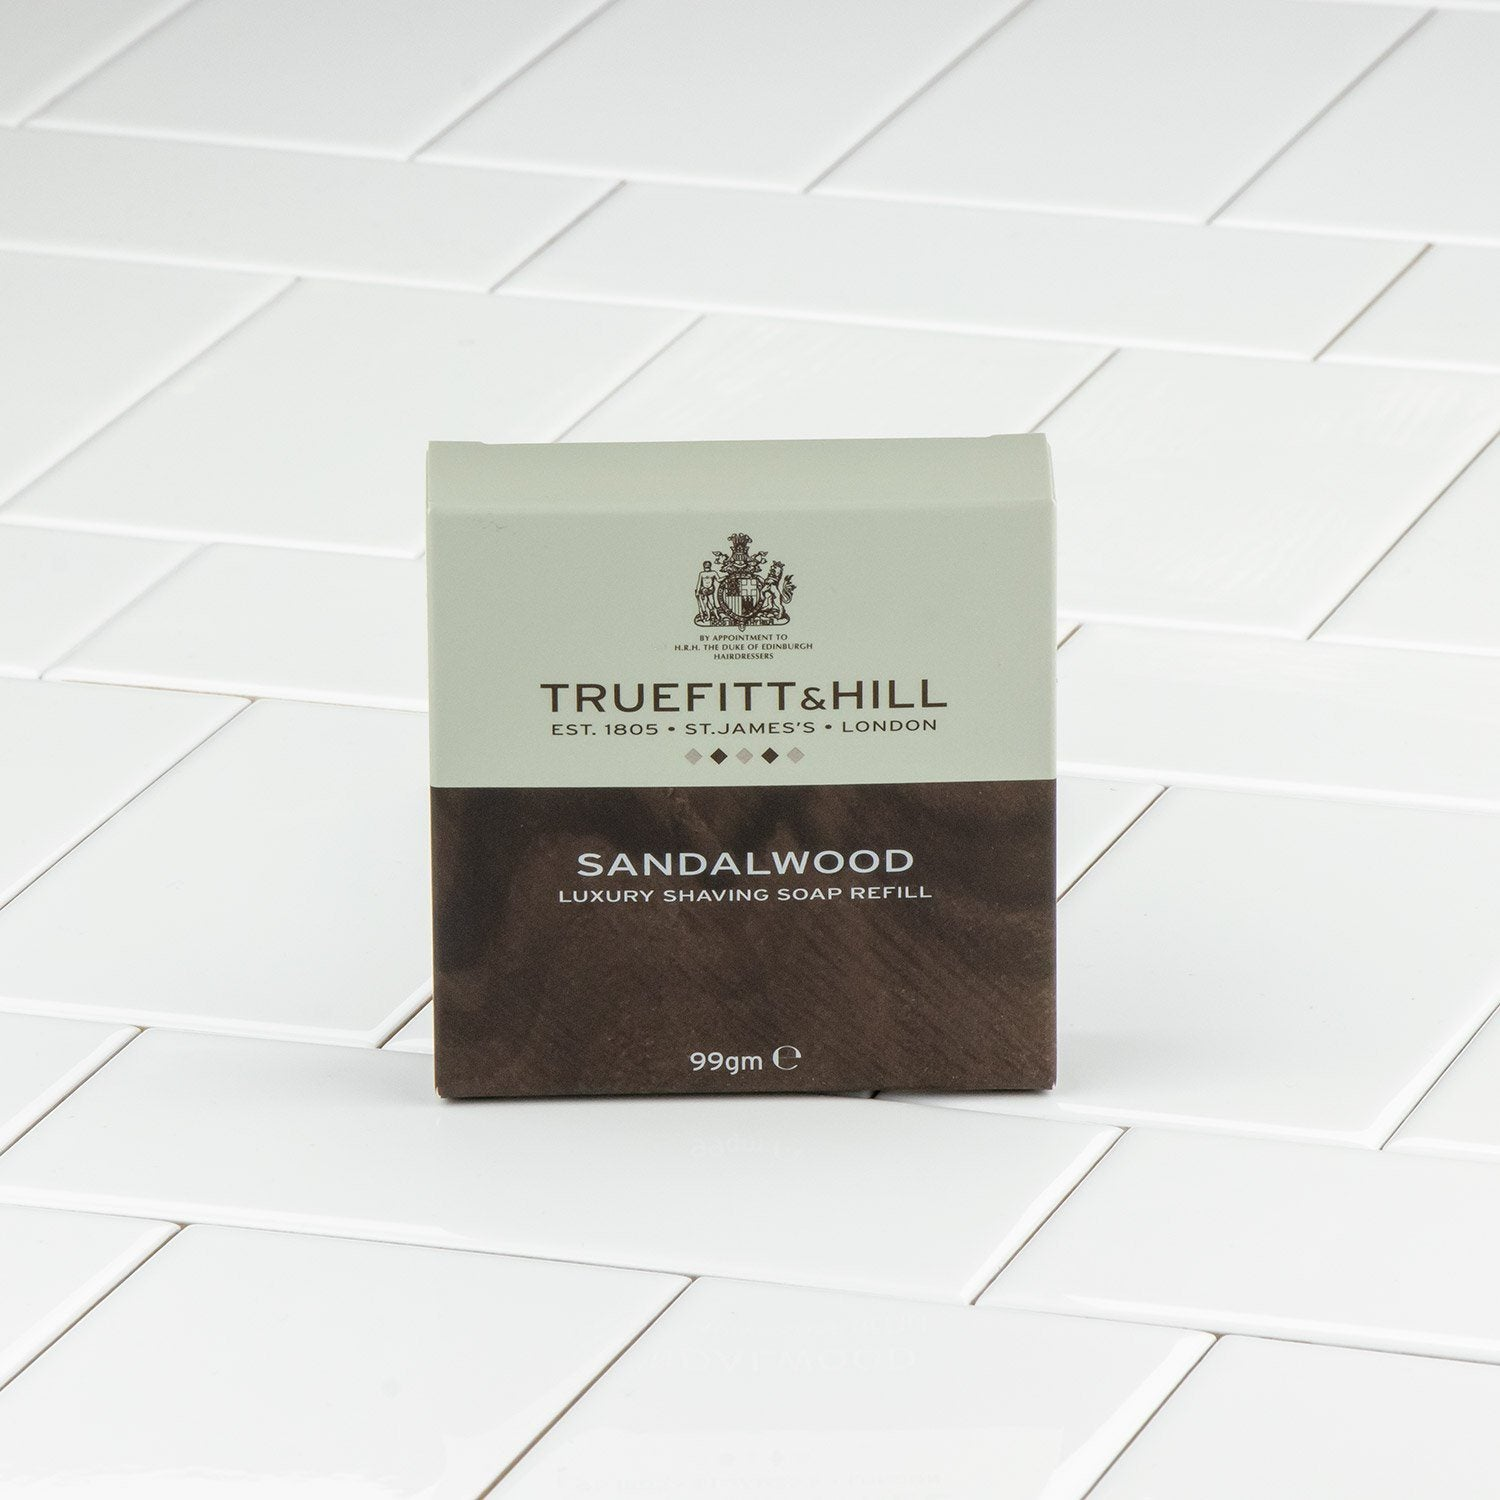 Truefitt & Hill Sandalwood Luxury Shaving Soap